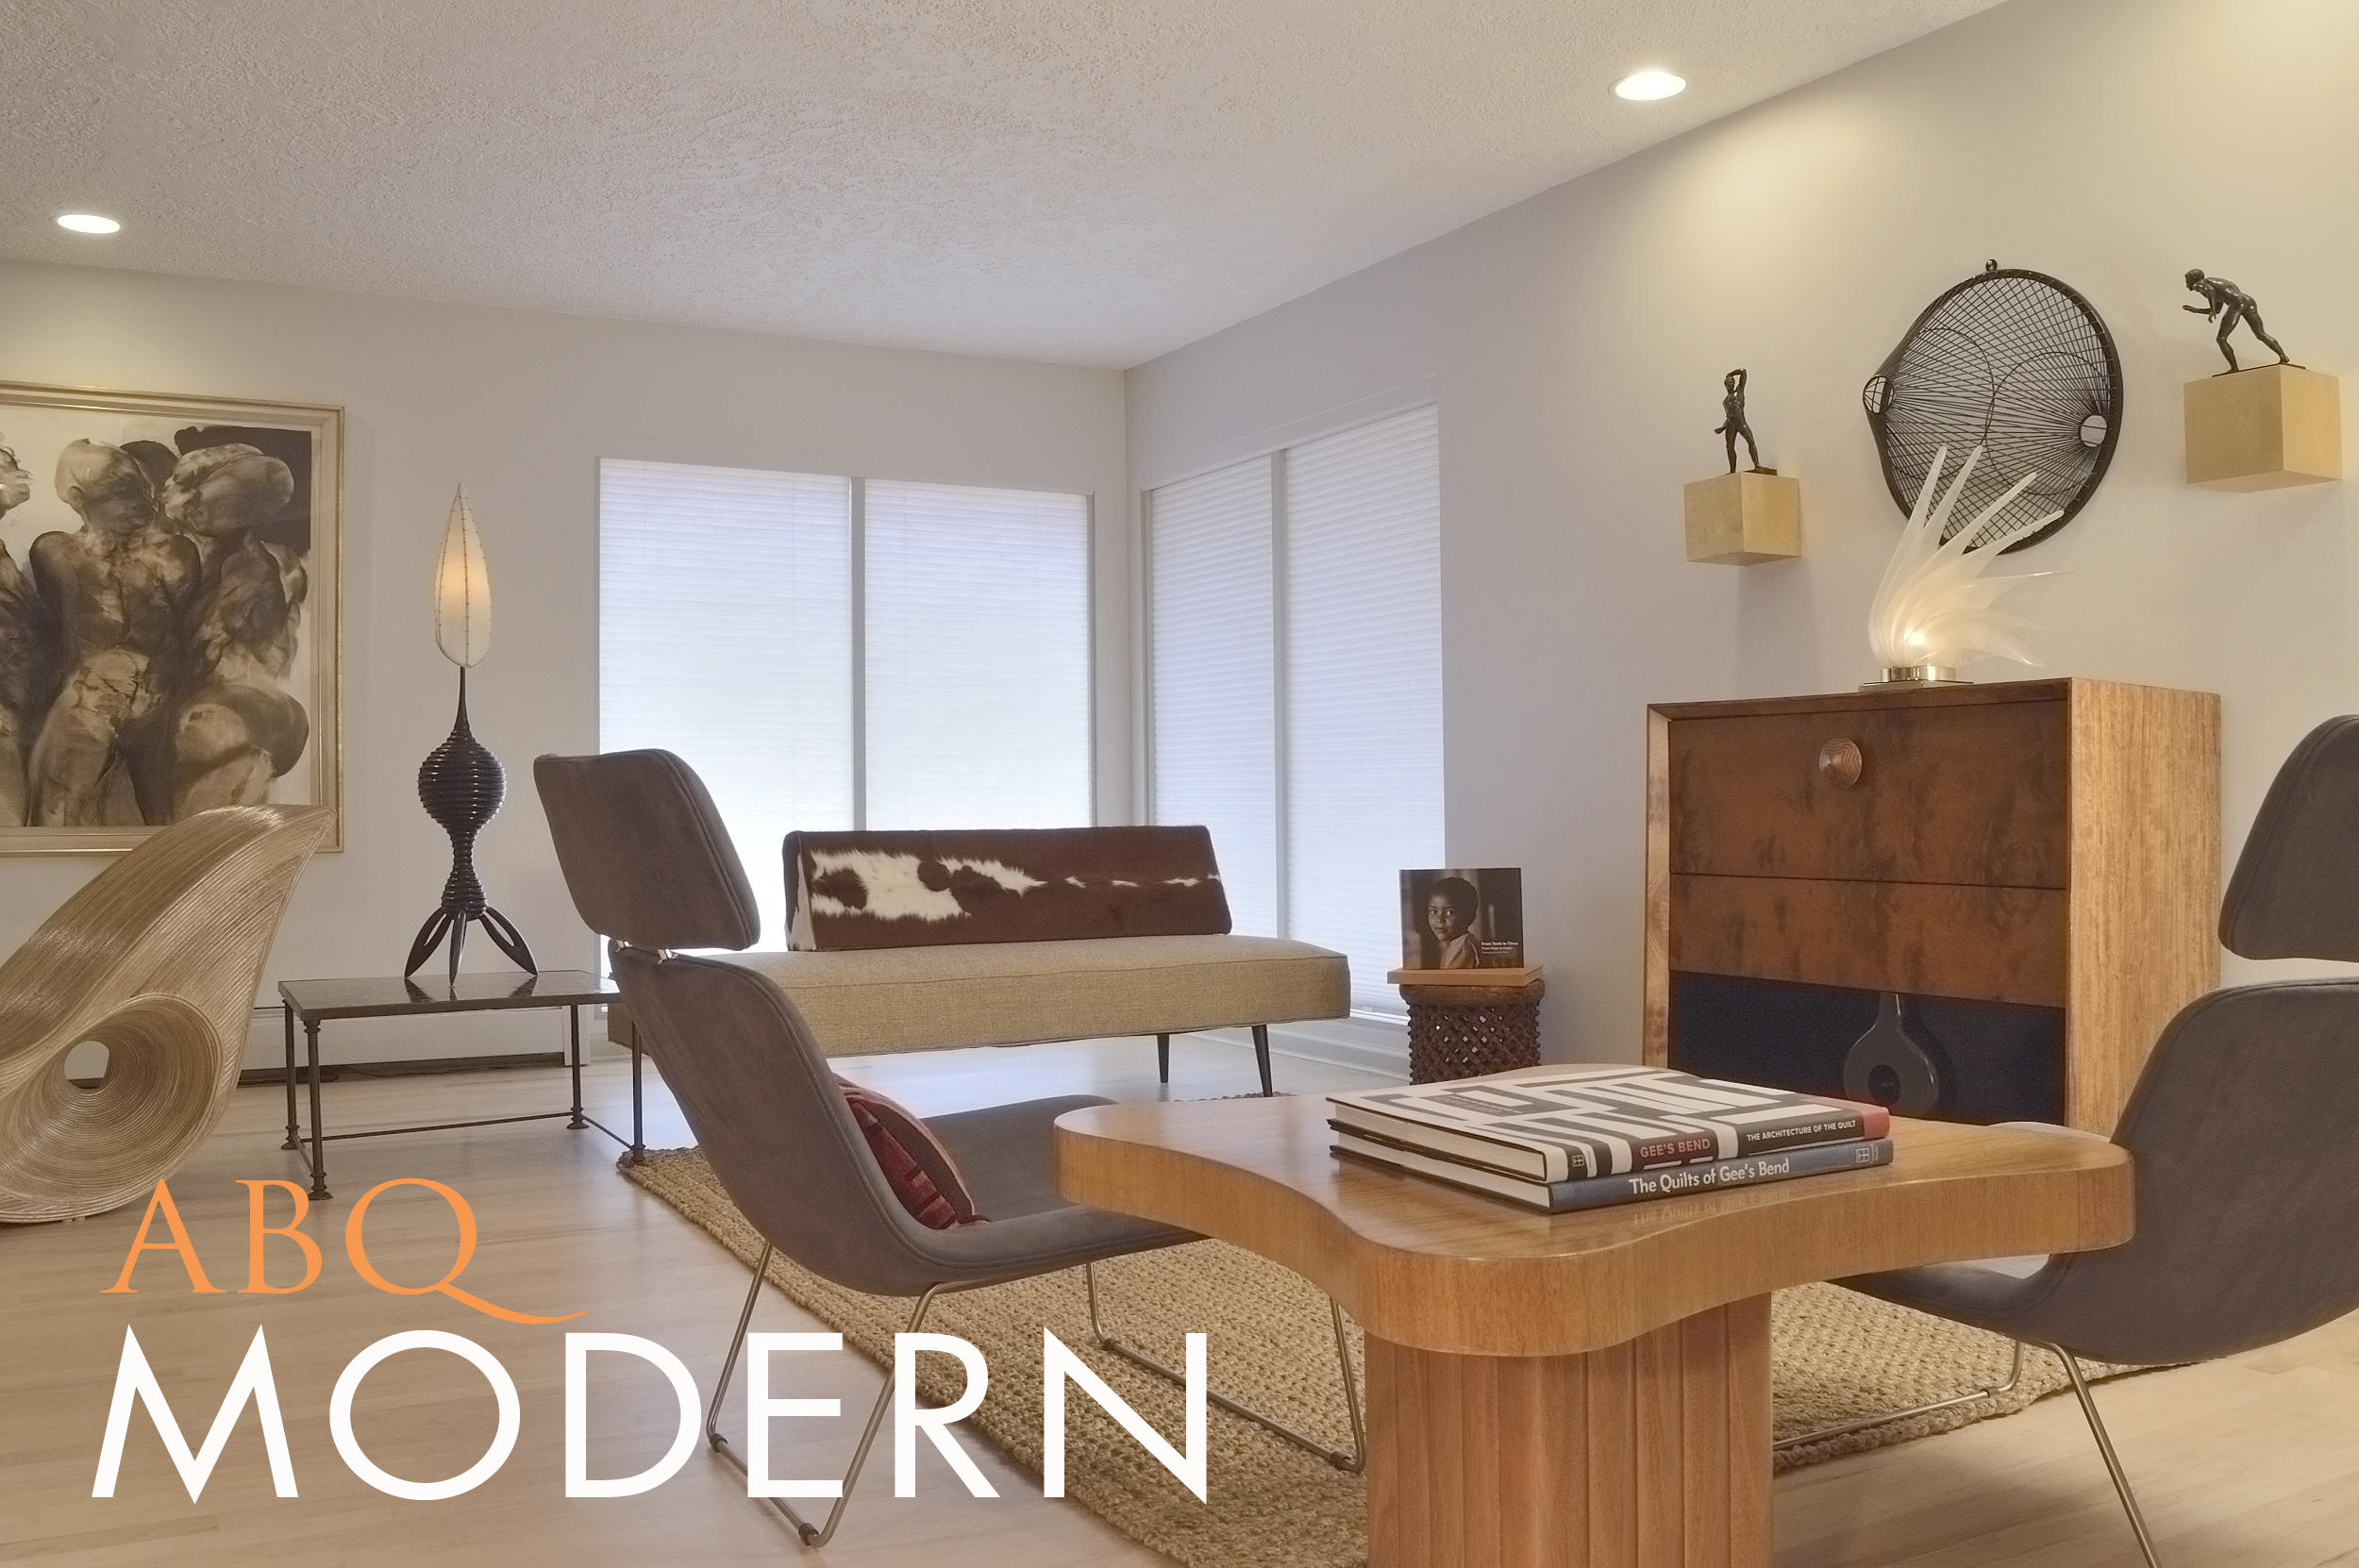 MID-CENTURY MODERN GEM! This one-of-a-kind Ashcraft Builders home has it all! The 1 story, 2 car garage, 2,131 sq. ft. home sits on a wide lot on a quiet tree-lined street. Close to EVERYTHING! Enjoy the best shopping and restaurants or take an easy stroll to Jerry Cline Park.The restored mid-century modern interior features open plan living at its best! Plenty of space, high ceilings, vintage fireplace hearth, maple hardwood floors and lots of natural light. A gallery leads to 2 ample bedrooms, large closets, and a beautifully appointed bathroom. The bedroom suite features a large walk-in closet and an amazing bathroom!The huge backyard, mature blooming trees and built-in barbecue station await your al fresco entertaining. Much more to see! ALARM PRESENT.